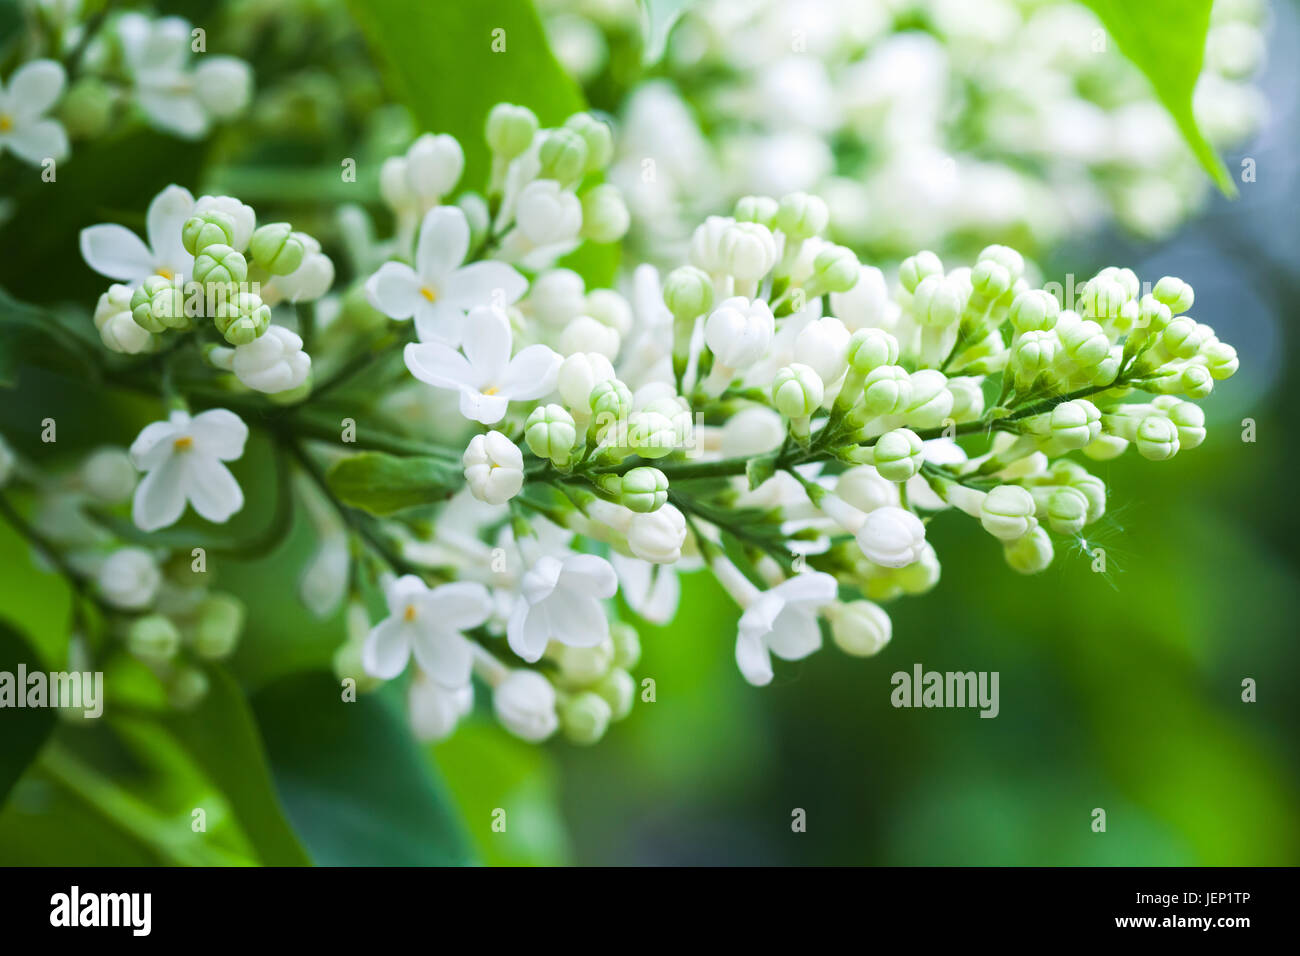 White Lilac Flowers Macro Photo Of Flowering Woody Plant In Summer